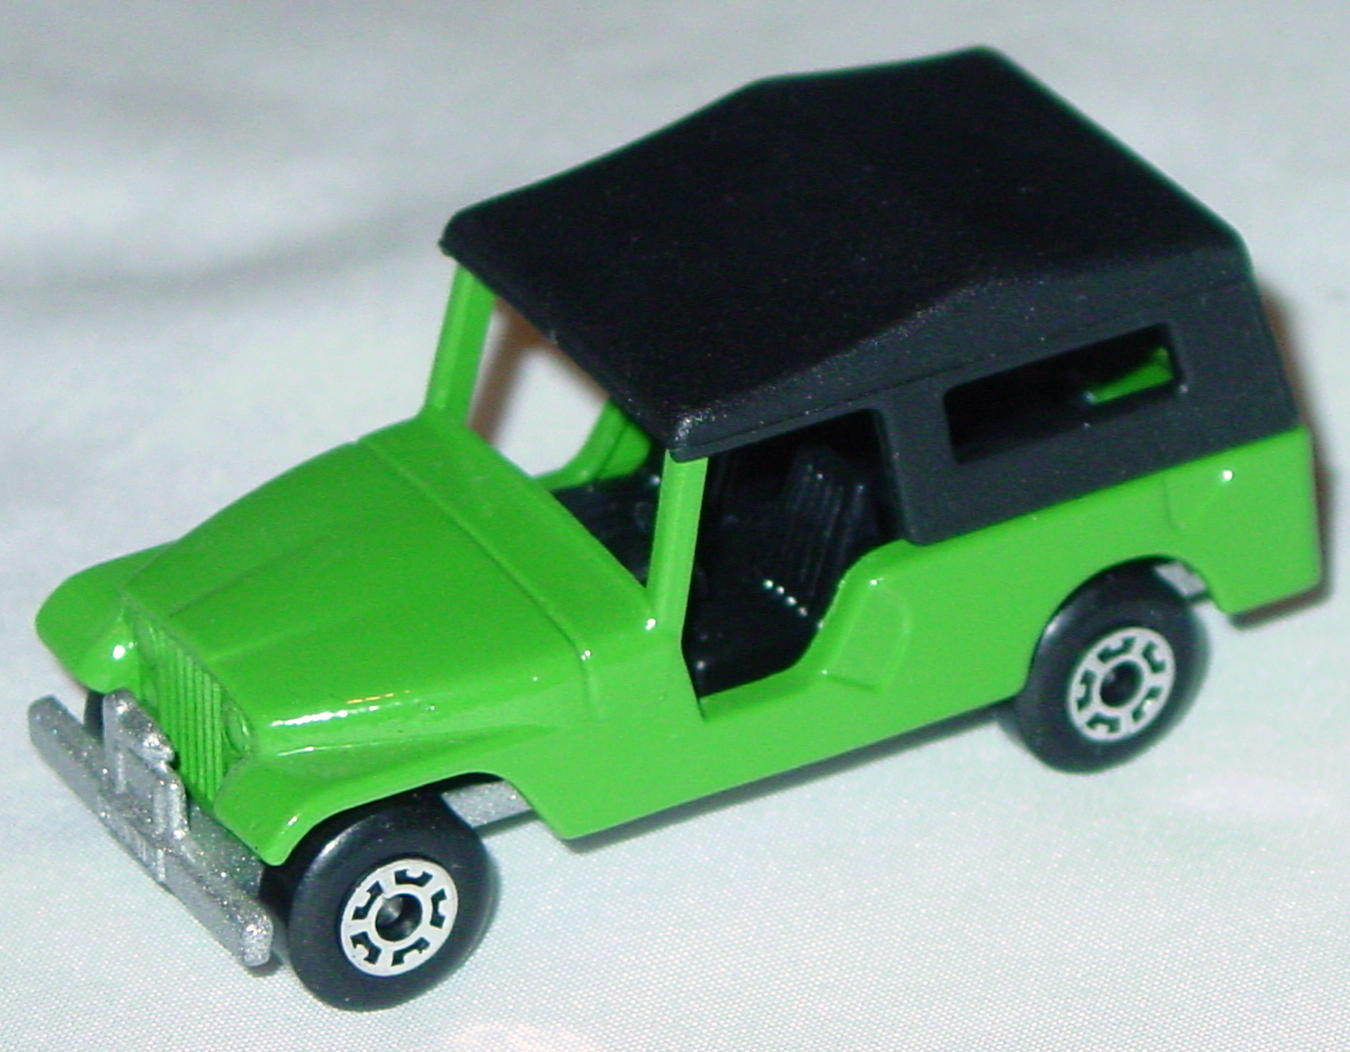 Hungarian 53 C 2 - CJ6 Jeep light Green black interior black roof met sil-grey base